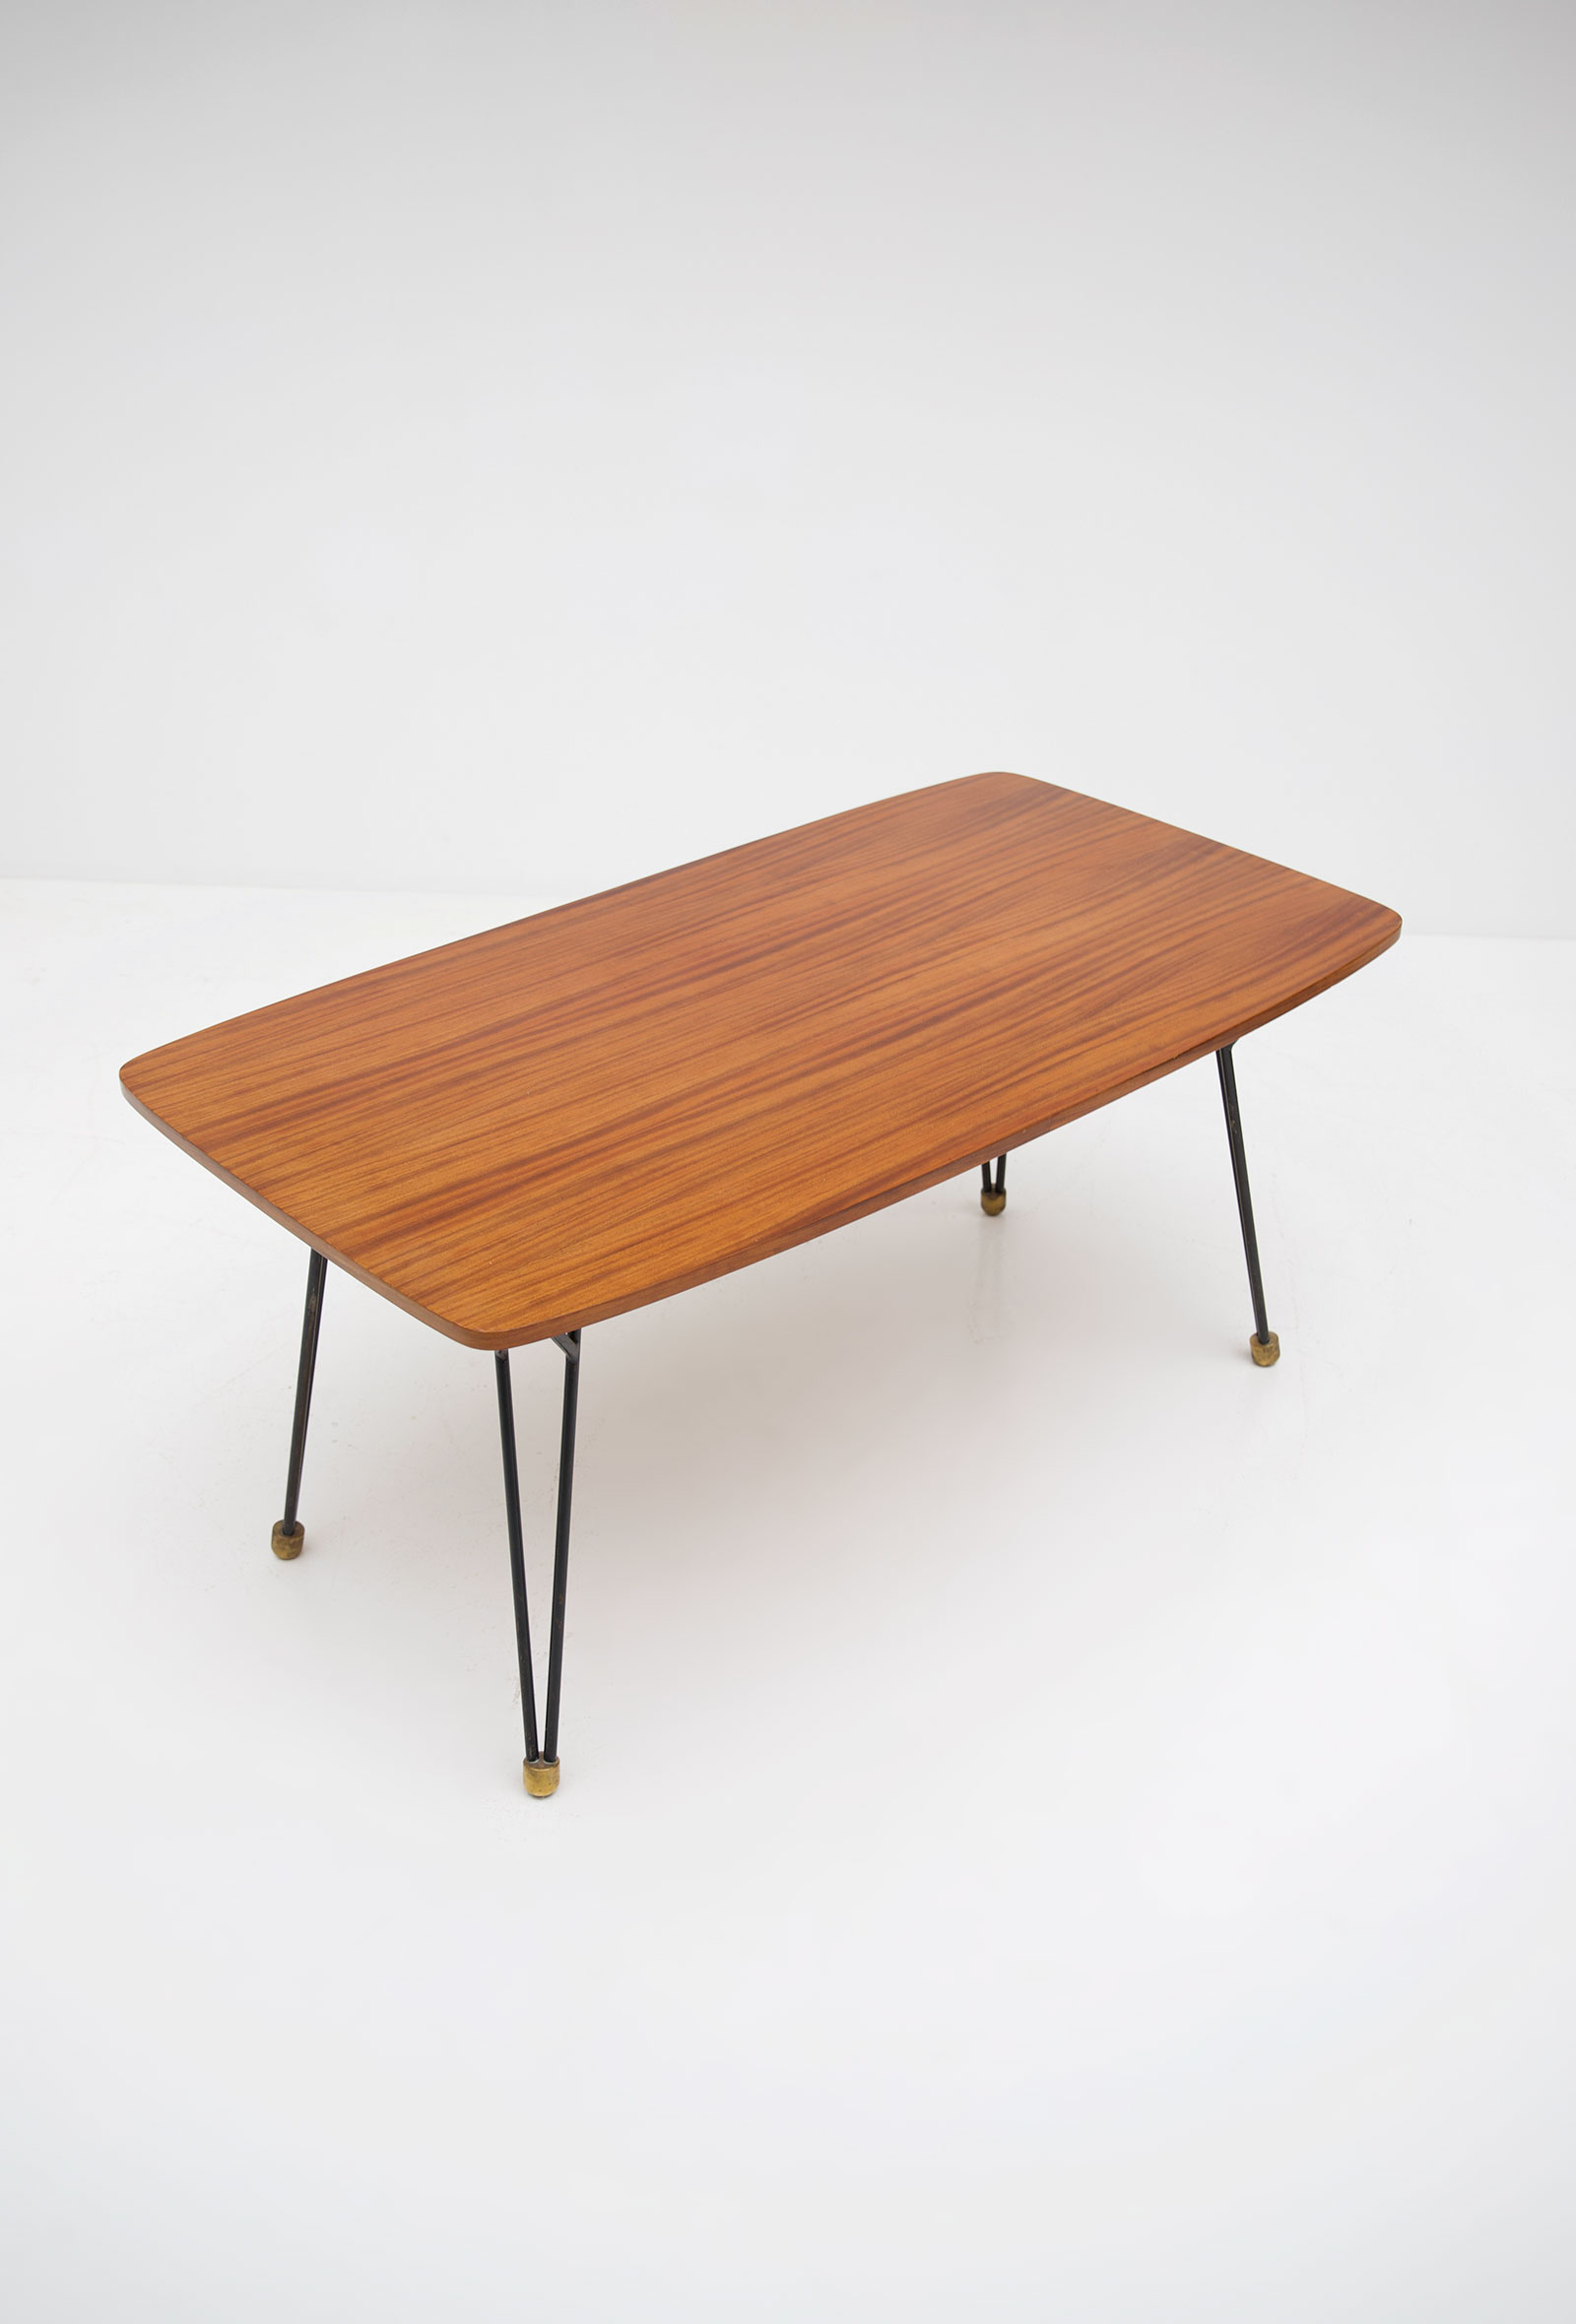 Alfred Hendrickx T3 dining table 50s